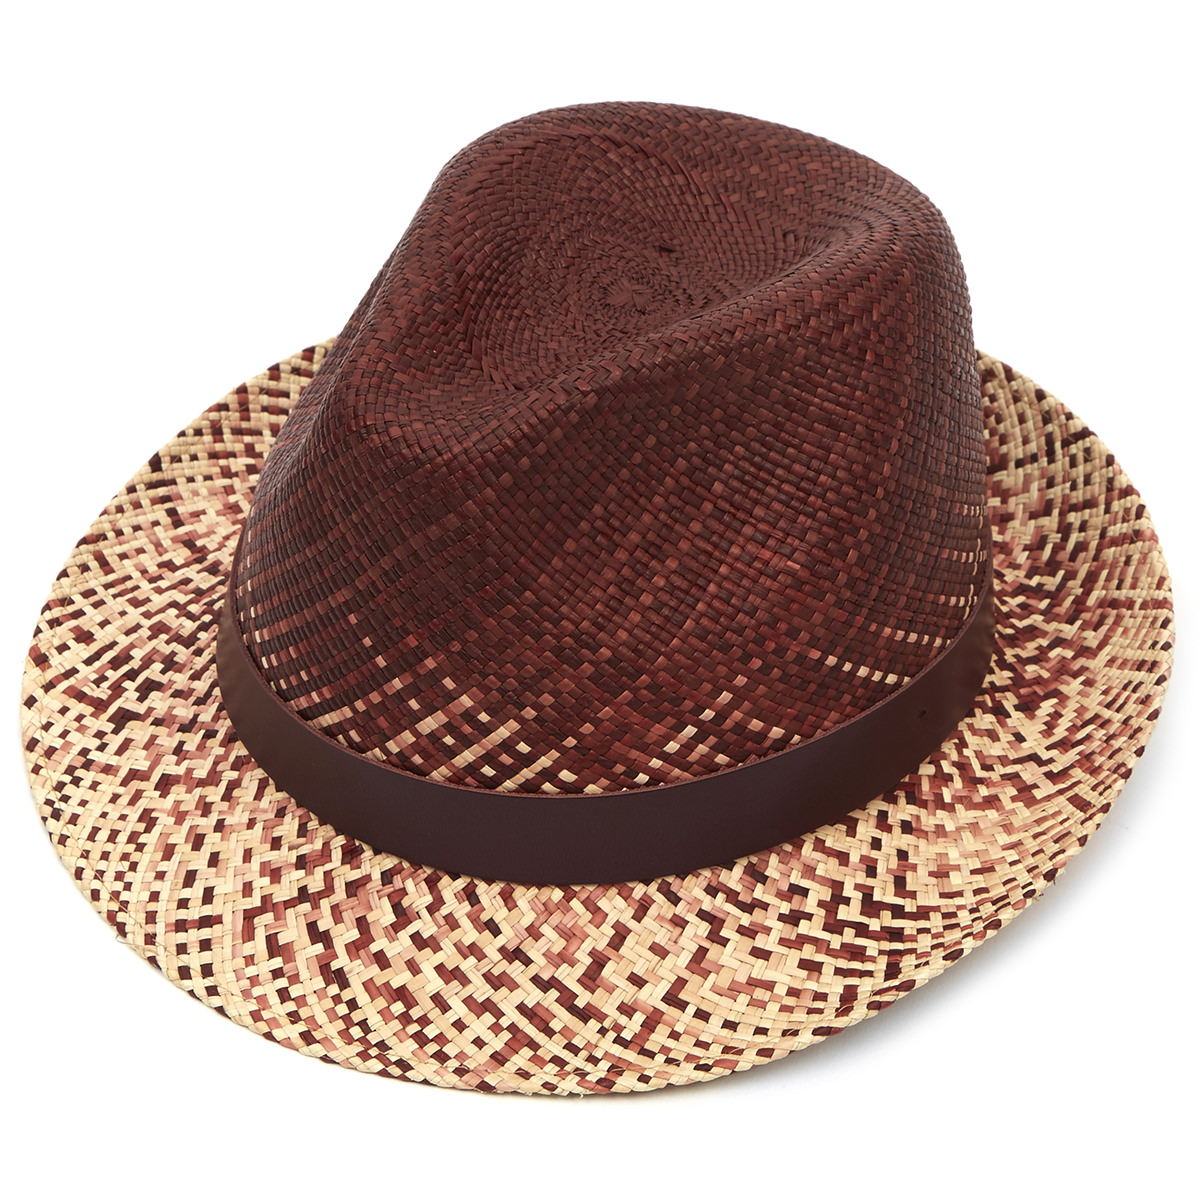 Hoxton Snap Brim Panama Hat - Burgundy & Natural S